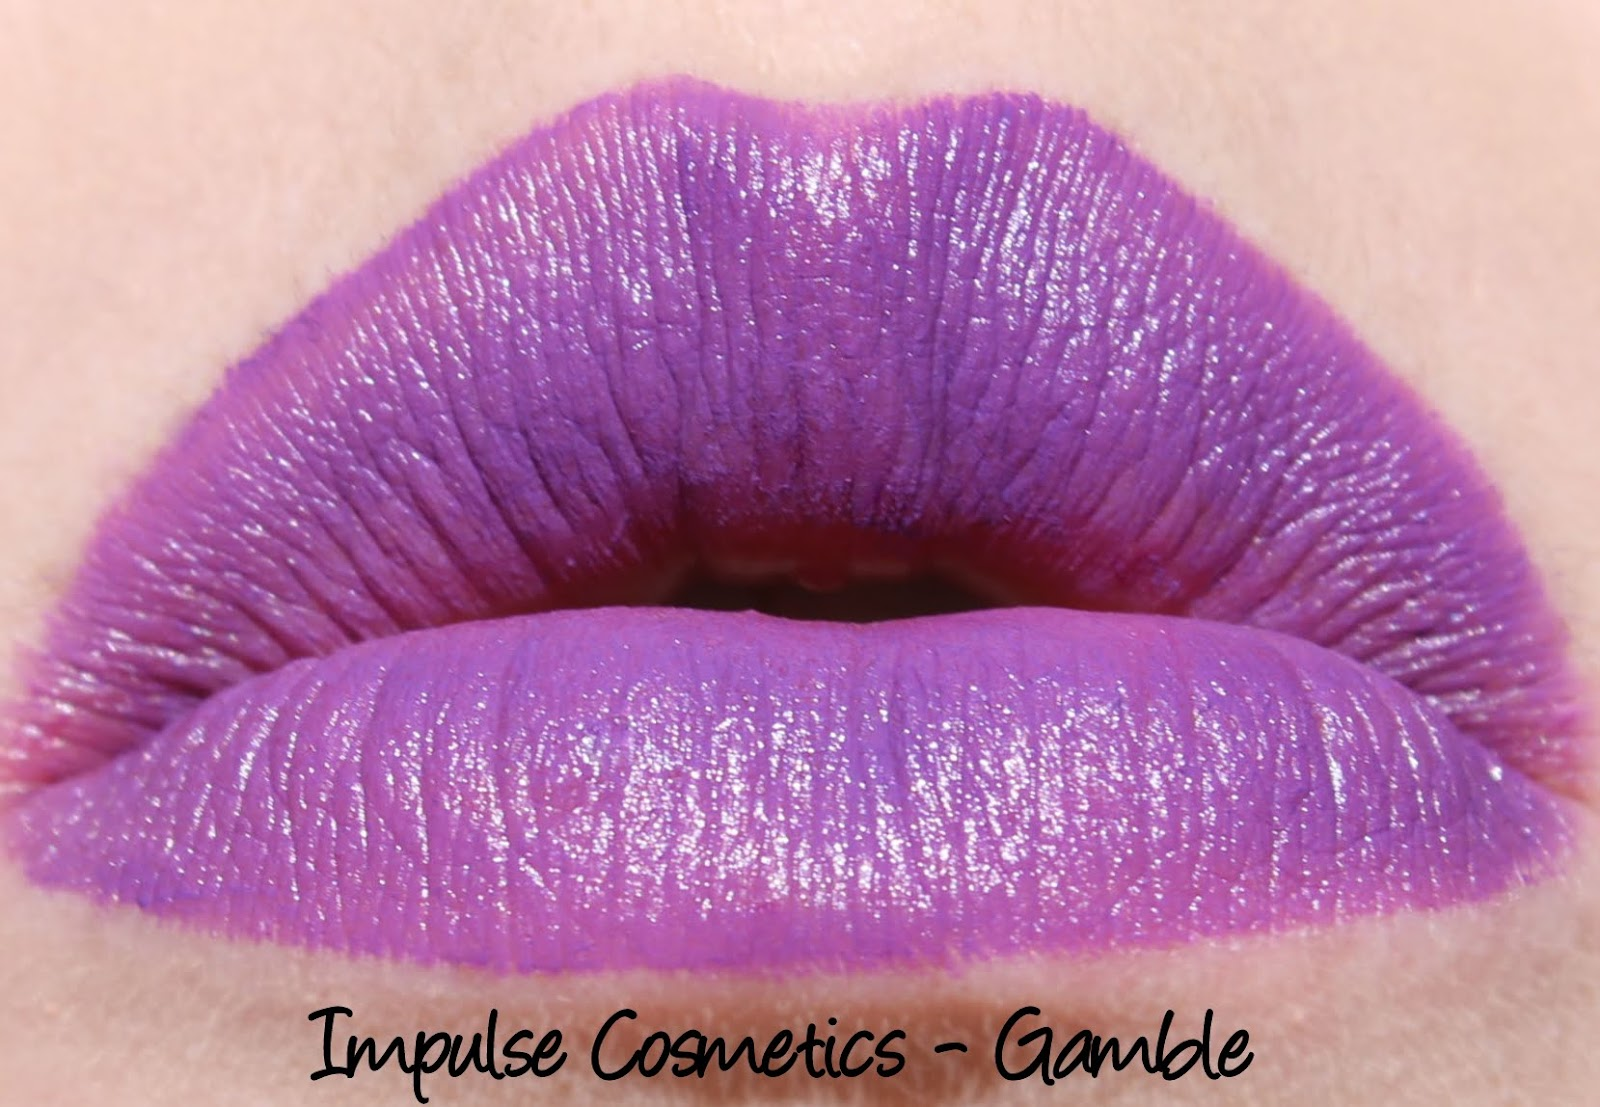 Impulse Cosmetics - Gamble lipstick swatch